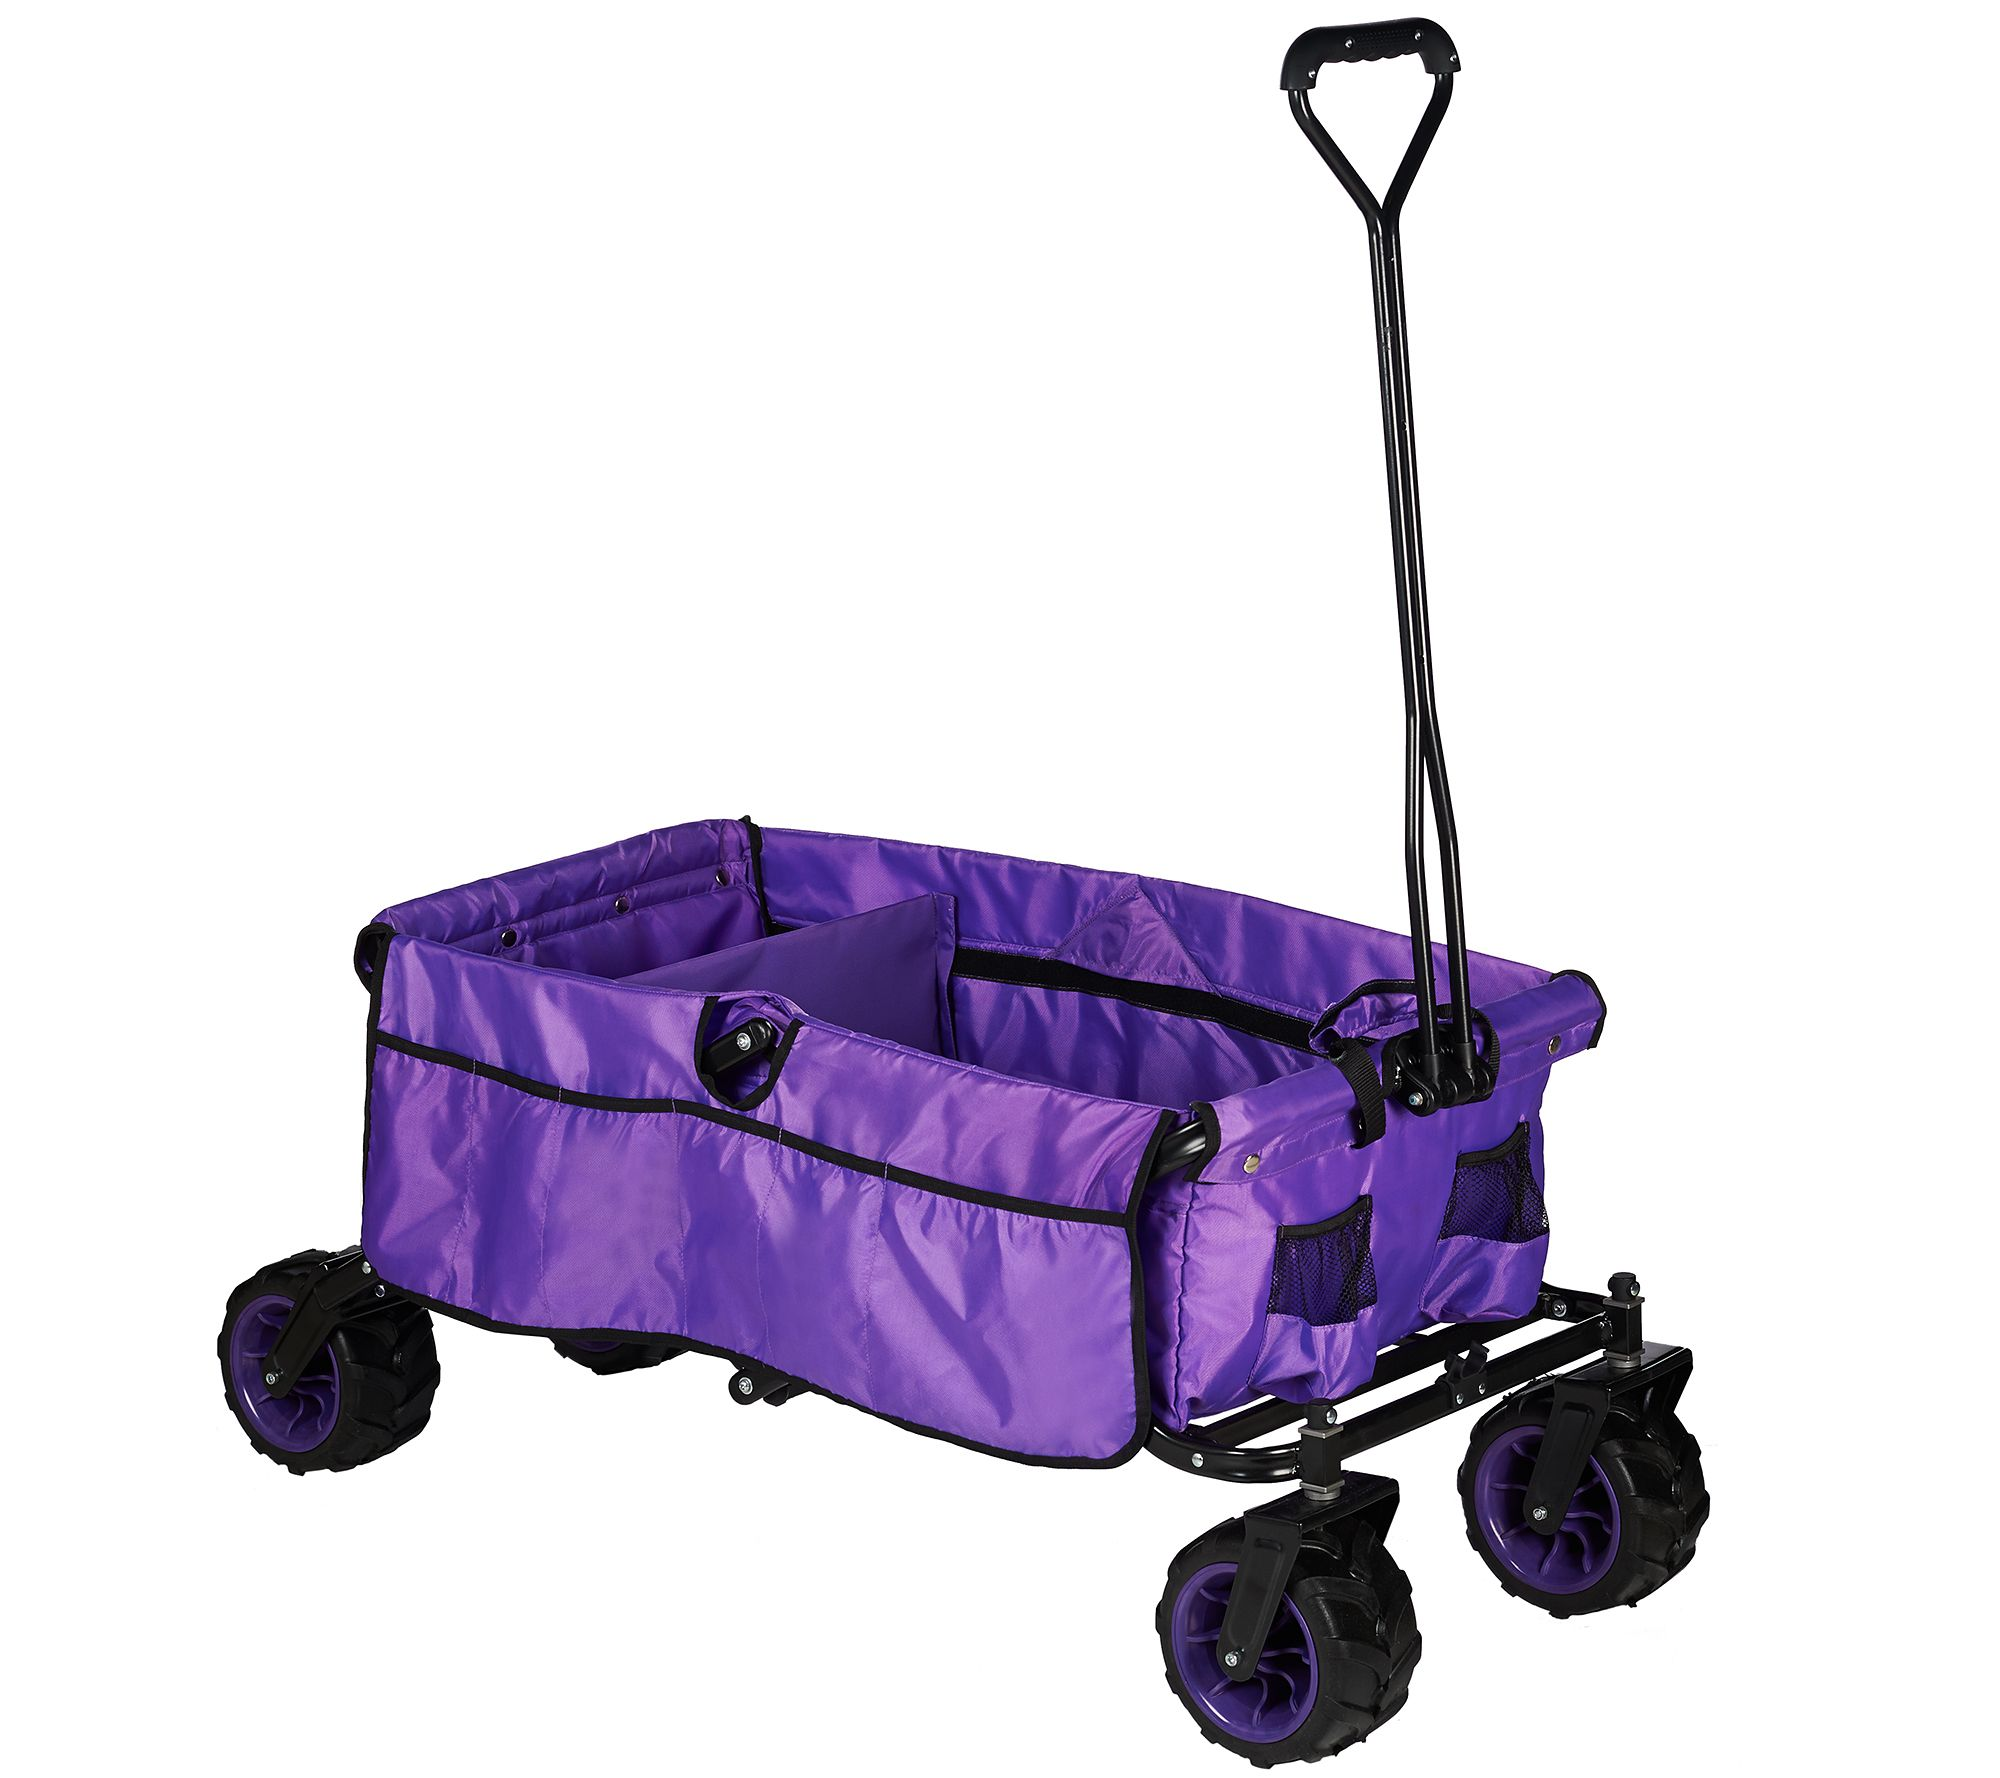 Creative Outdoor All-Terrain Folding Wagon with Divider - Page 1 — QVC.com 54ab1c6c16d2